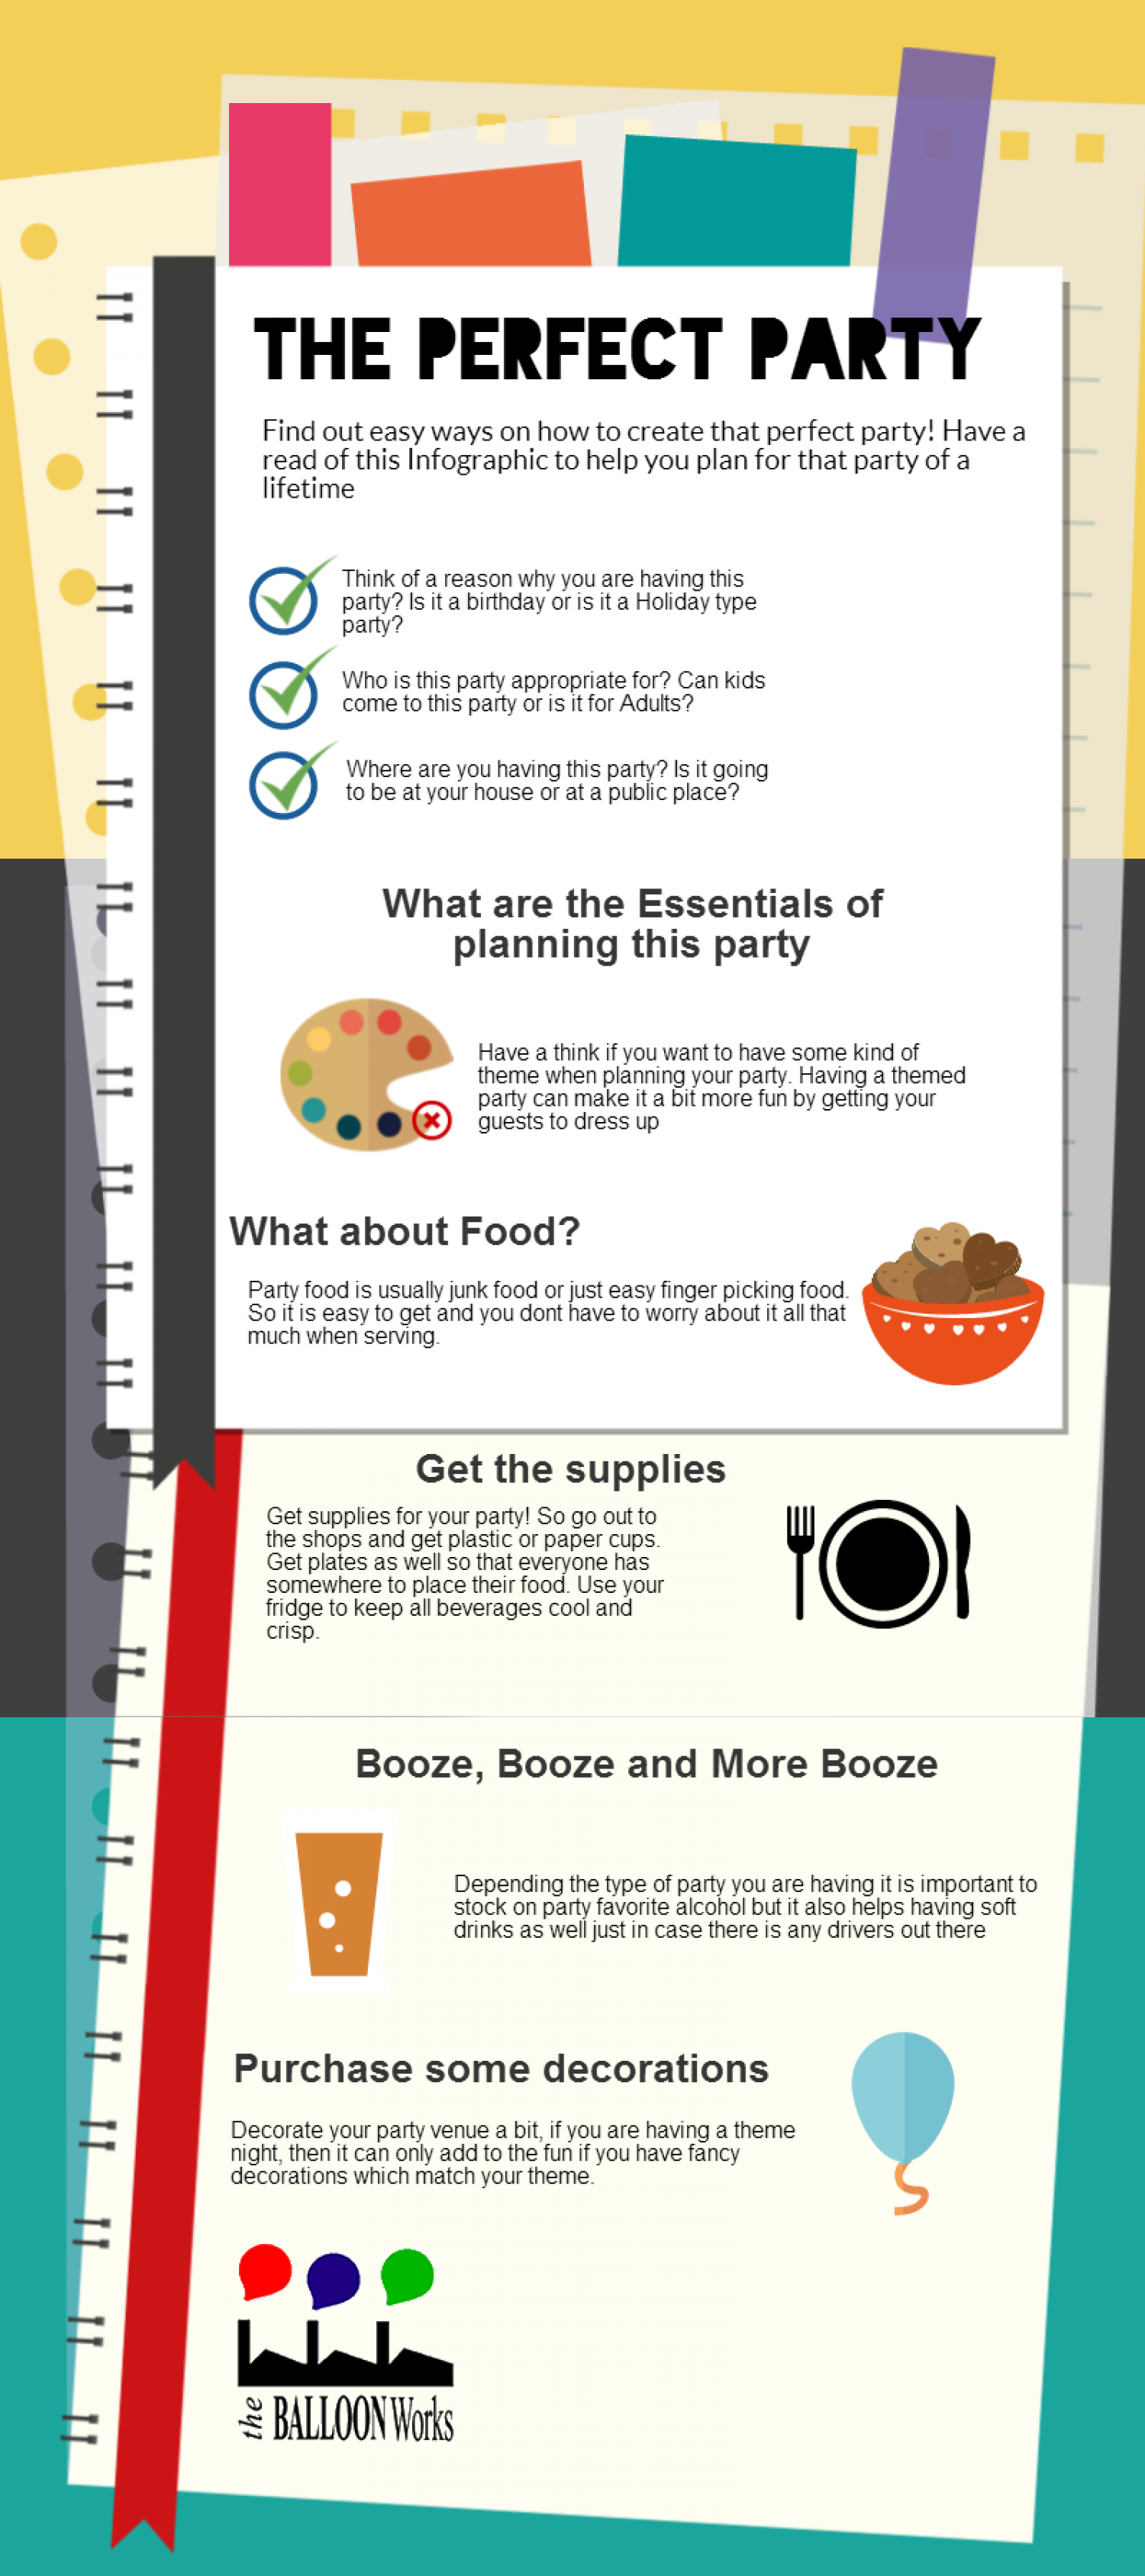 The Perfect Party Infographic